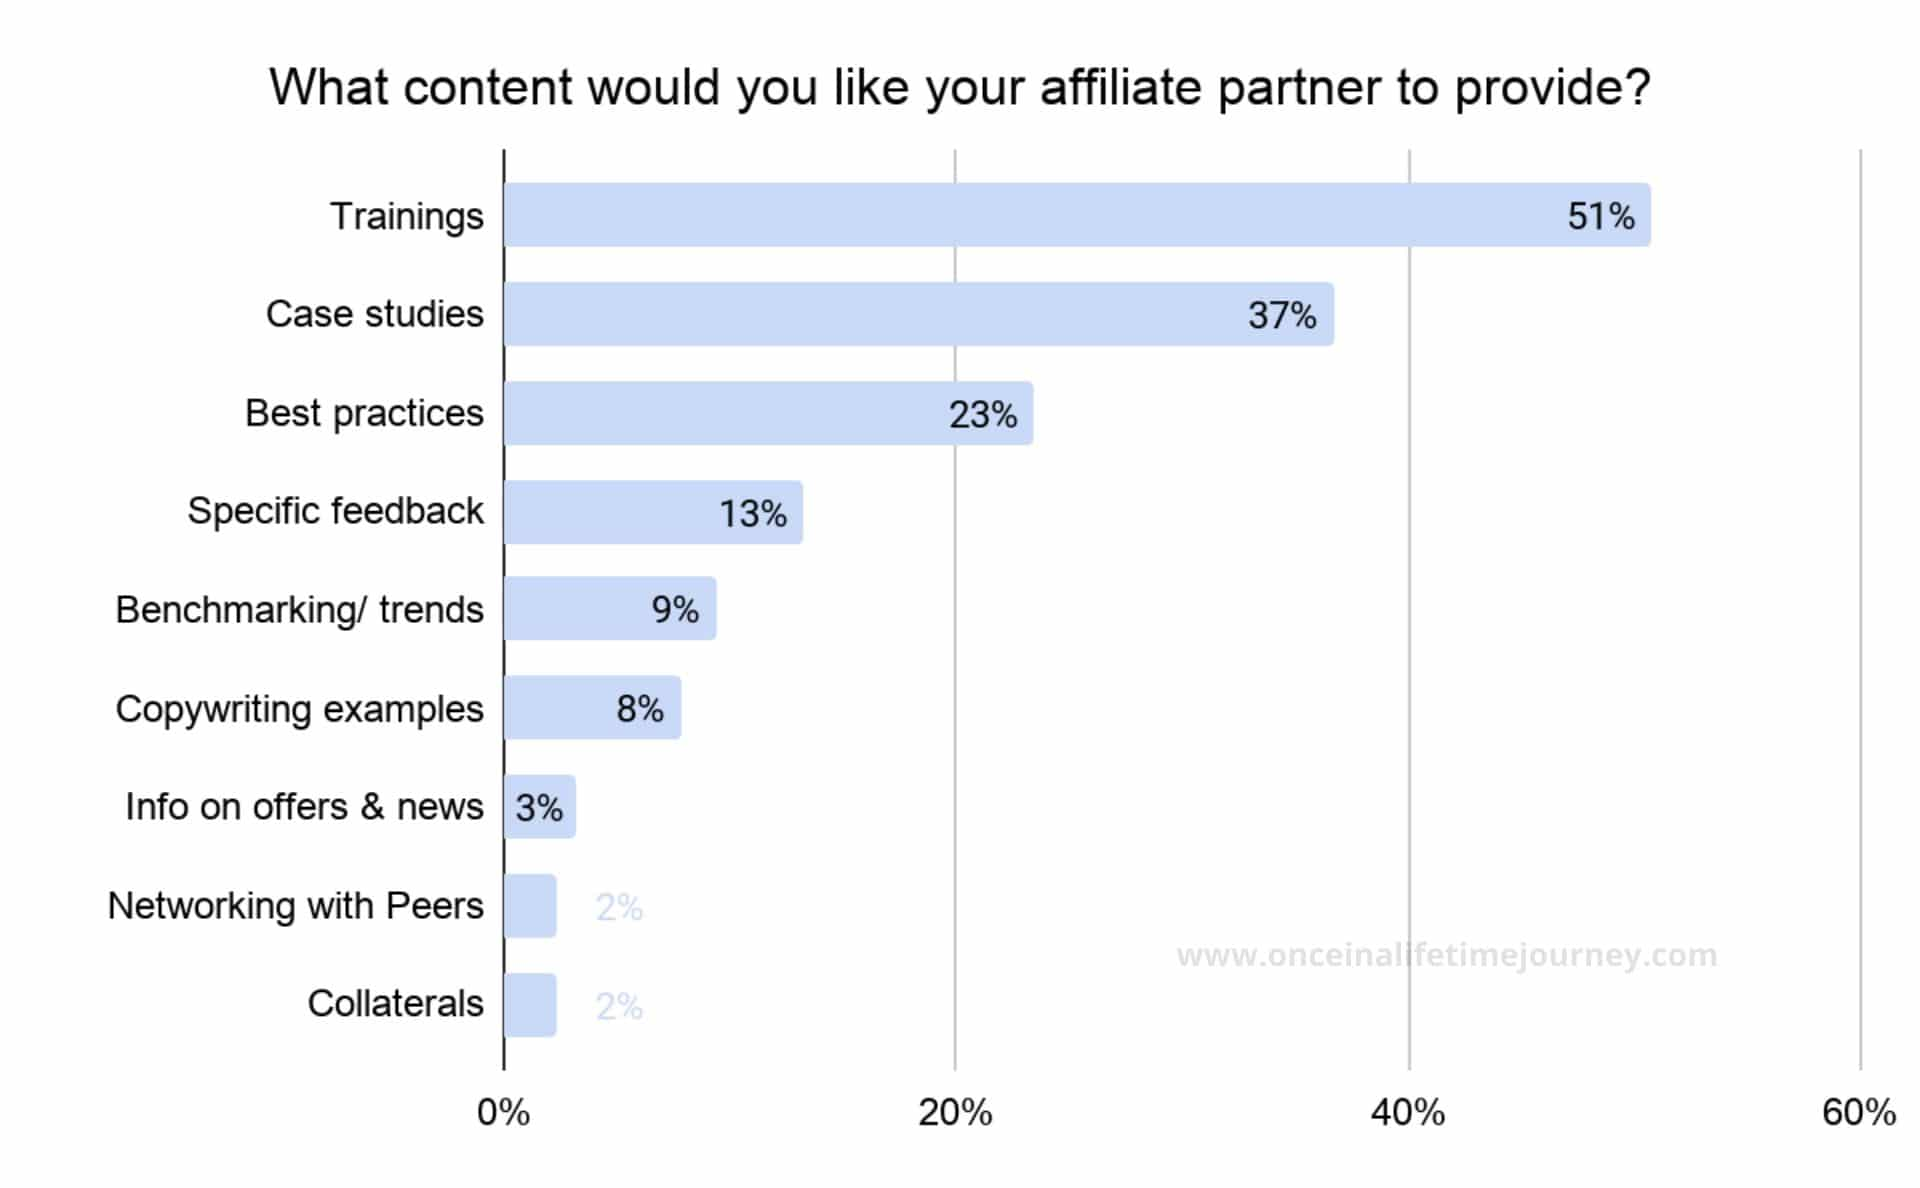 Content that Content Creators would like their affiliates to provide